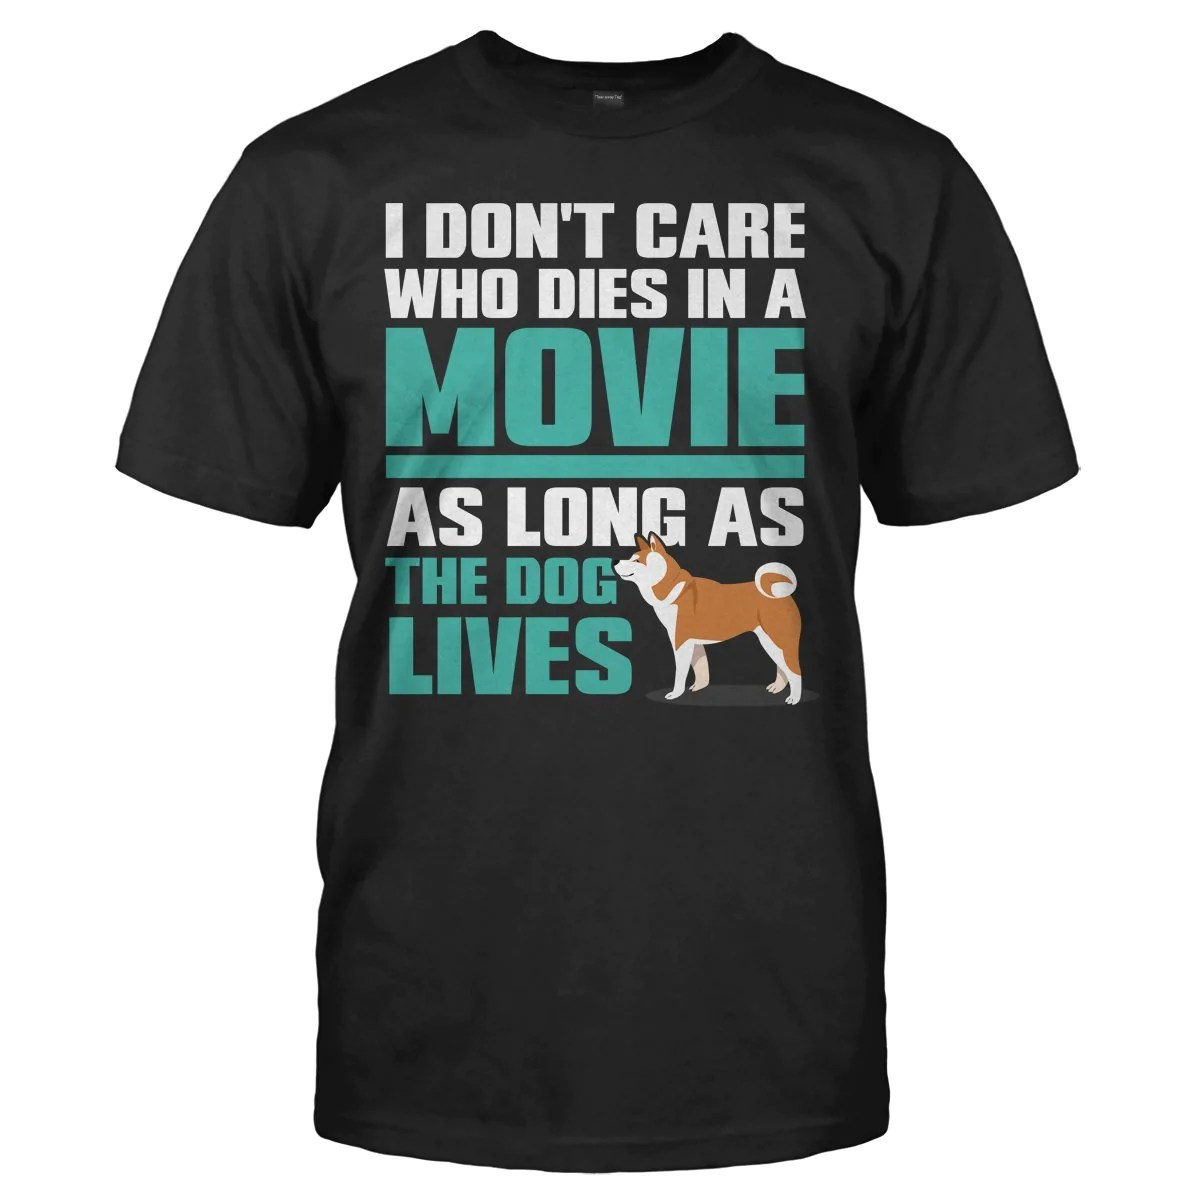 Dont Care Who Dies As Long As The Dog Lives TShirt  I